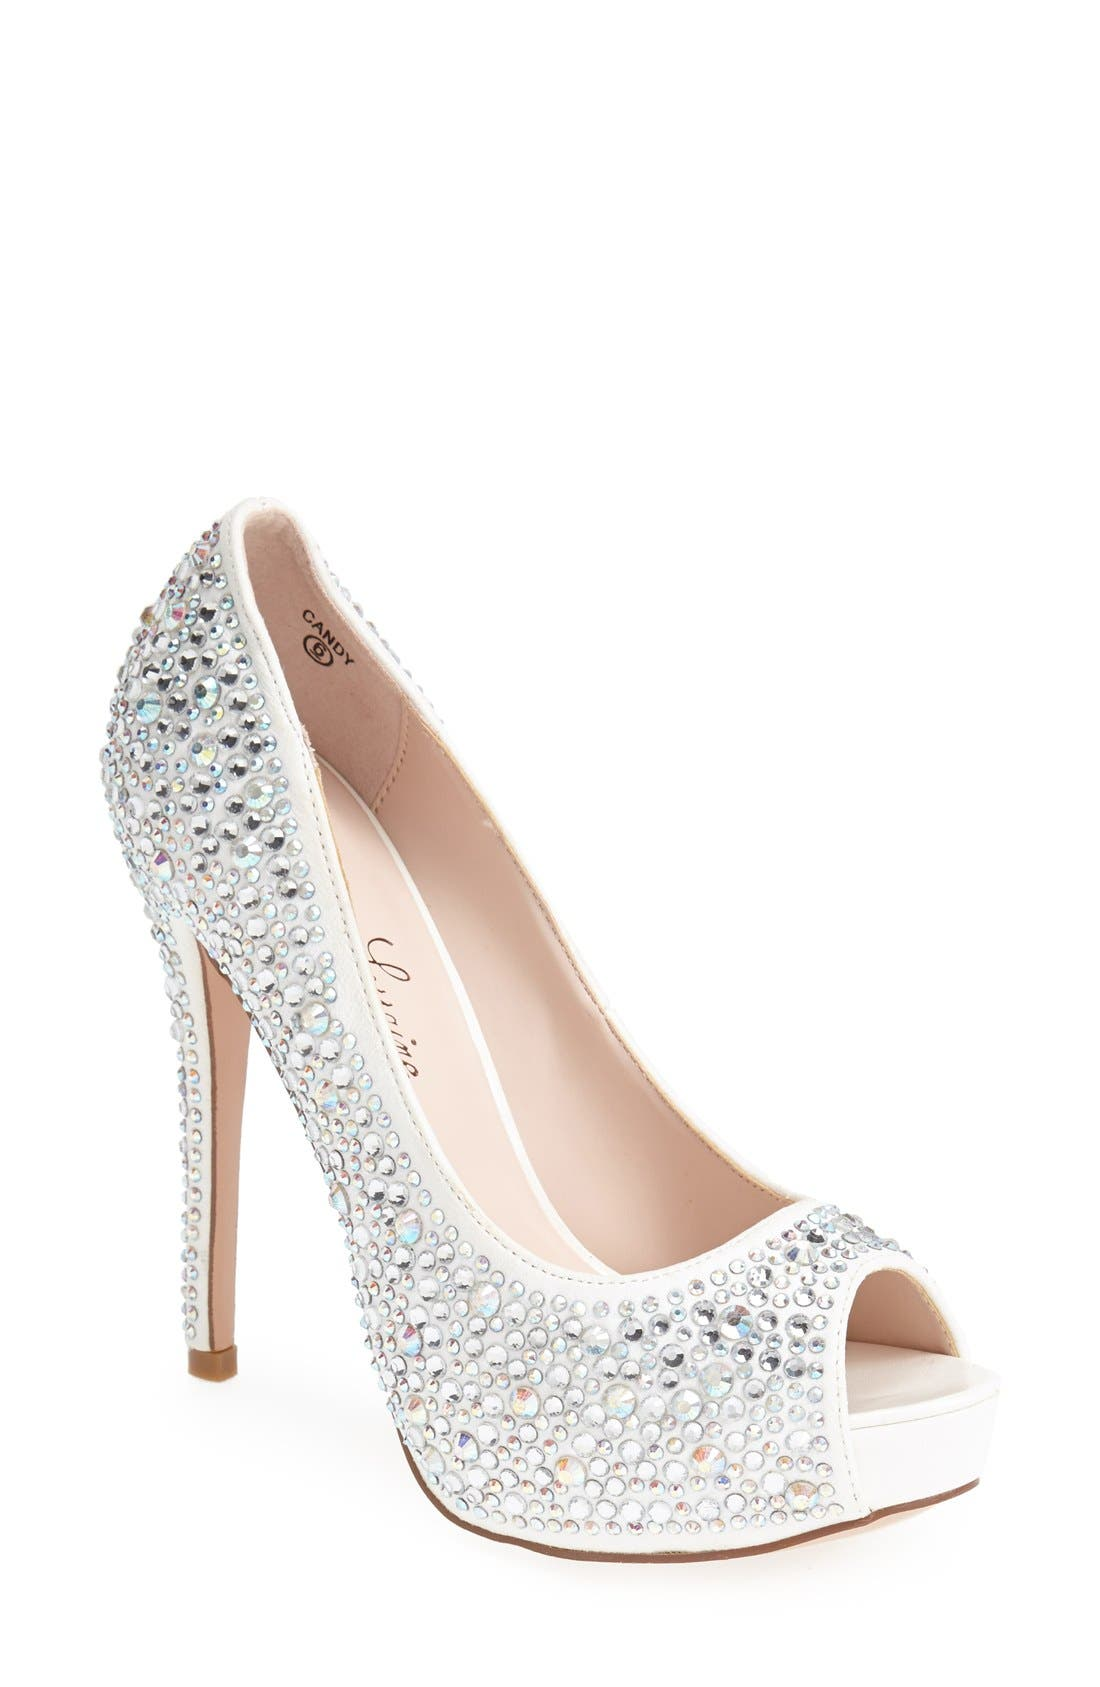 Lauren Lorraine 'Candy' Crystal Peep Toe Pump (Women)